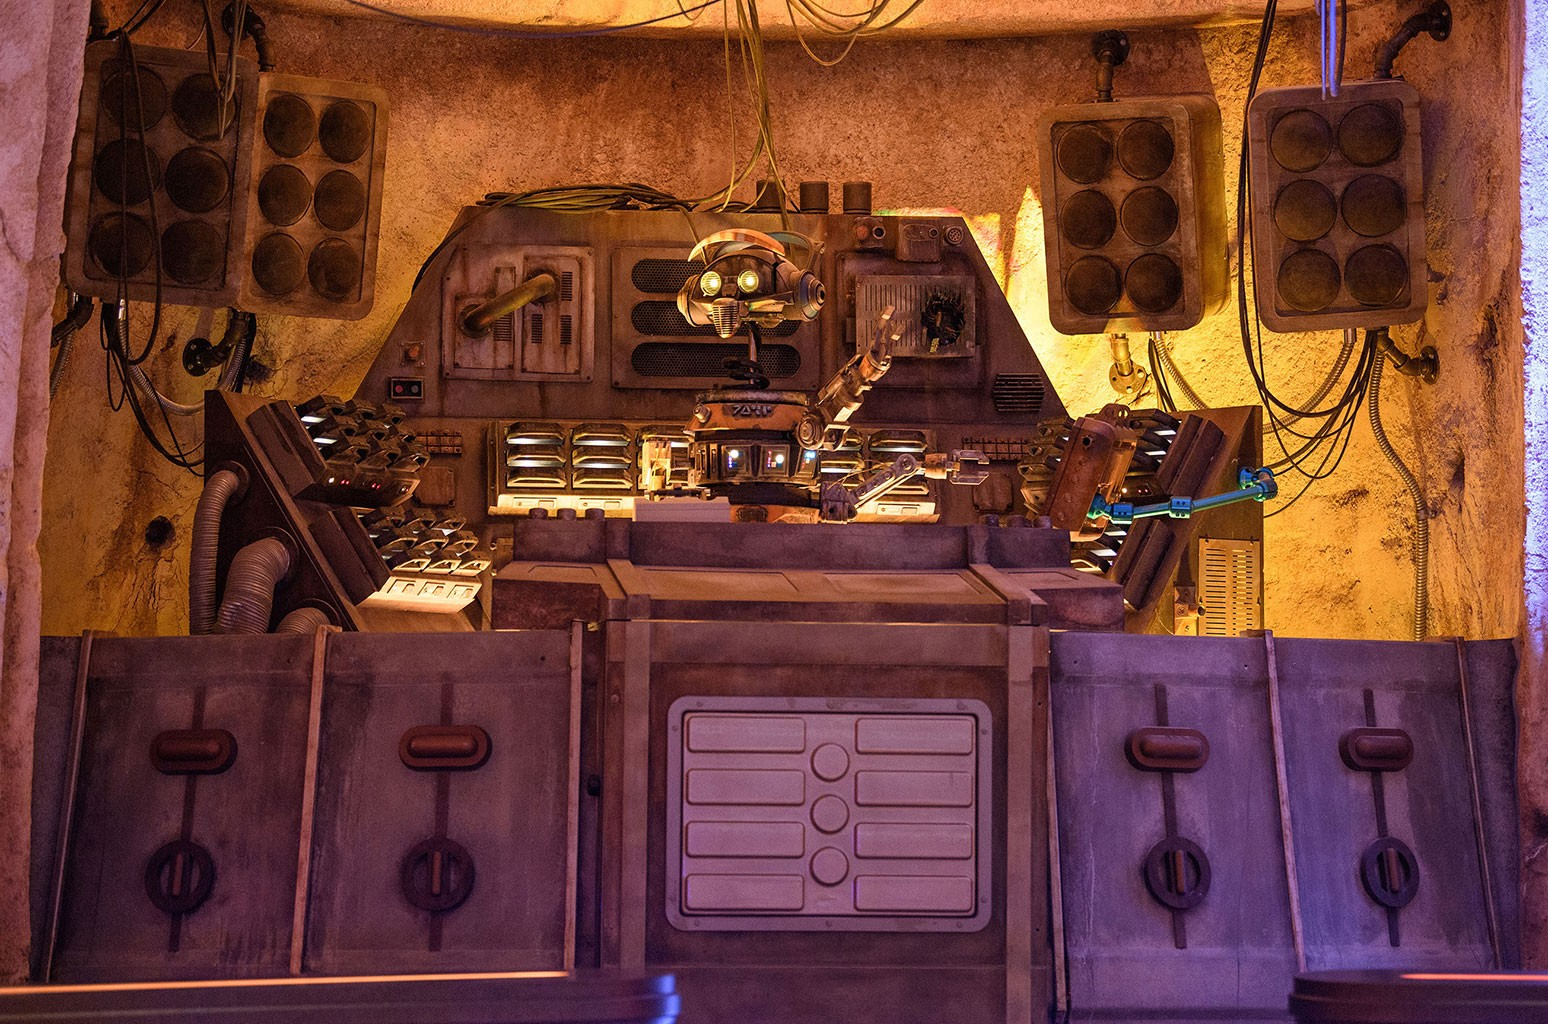 DJ R3X at Oga's Cantina in Star Wars: Galaxy's Edge.